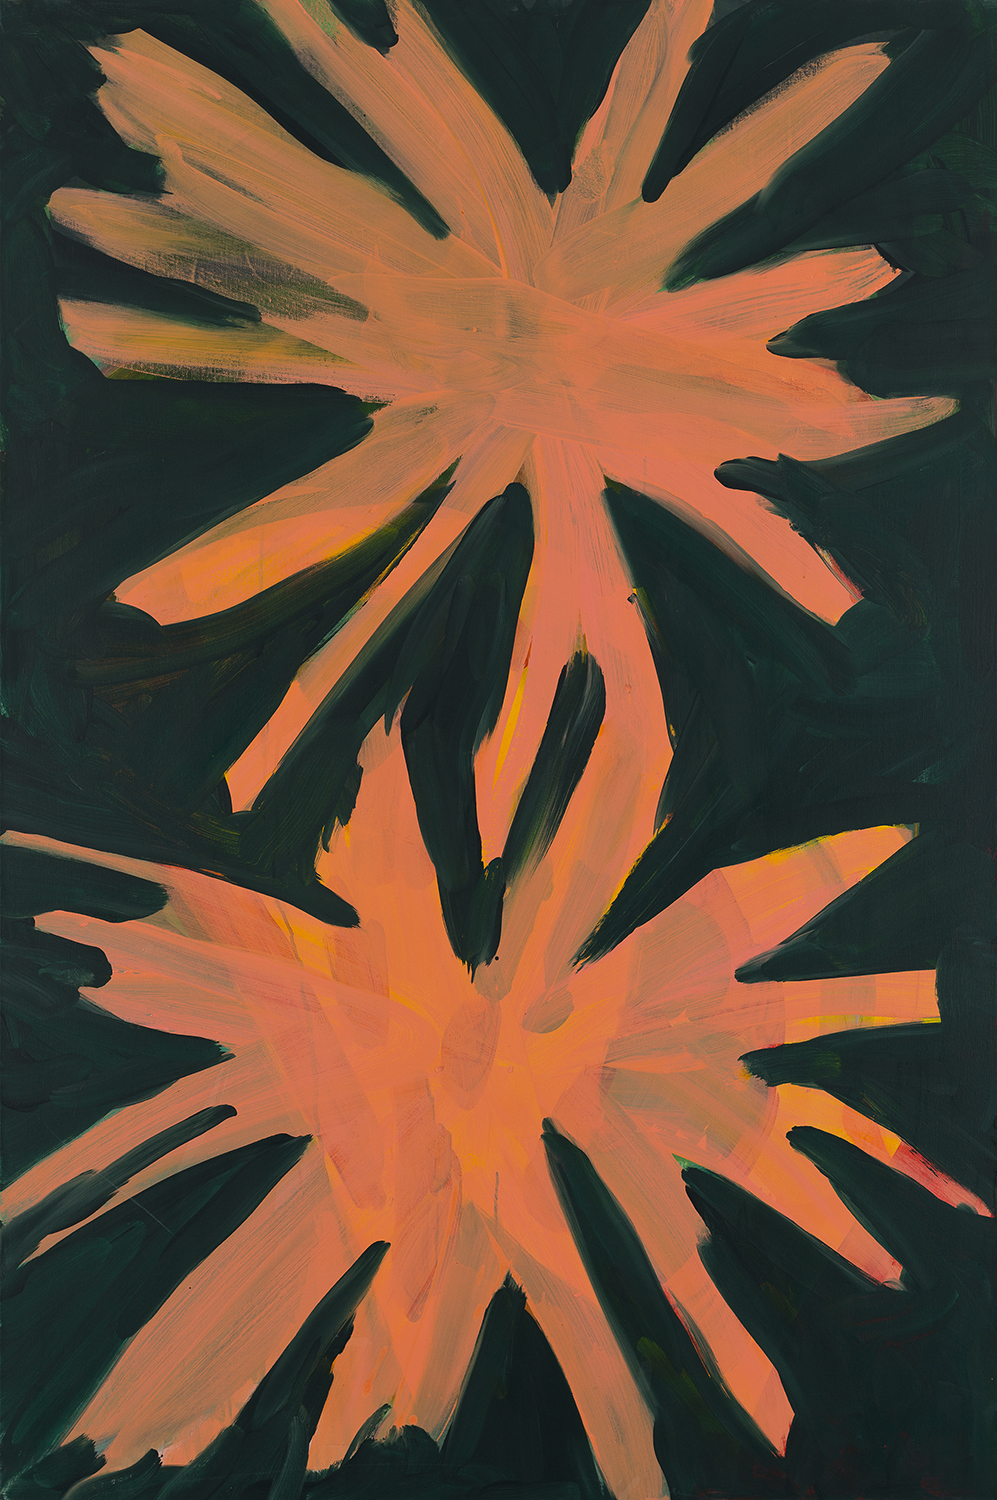 flower 10, Kremlin towers, orange, rosa, 2009